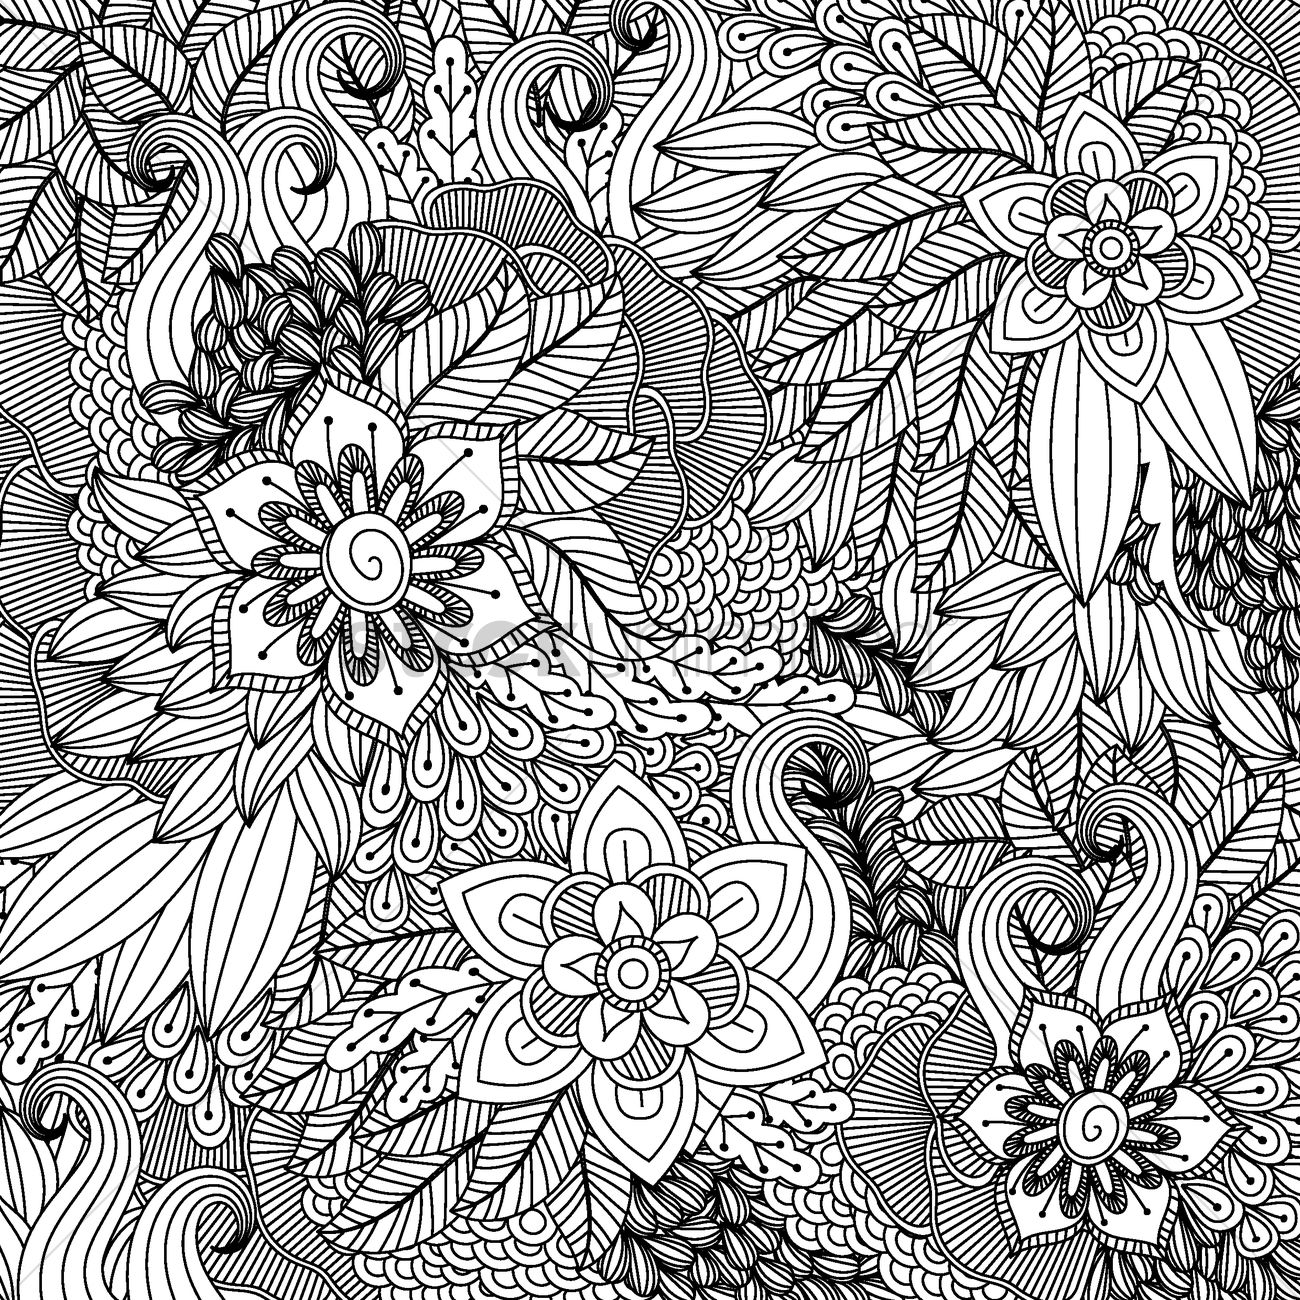 Intricate Floral Design Vector Image 1998875